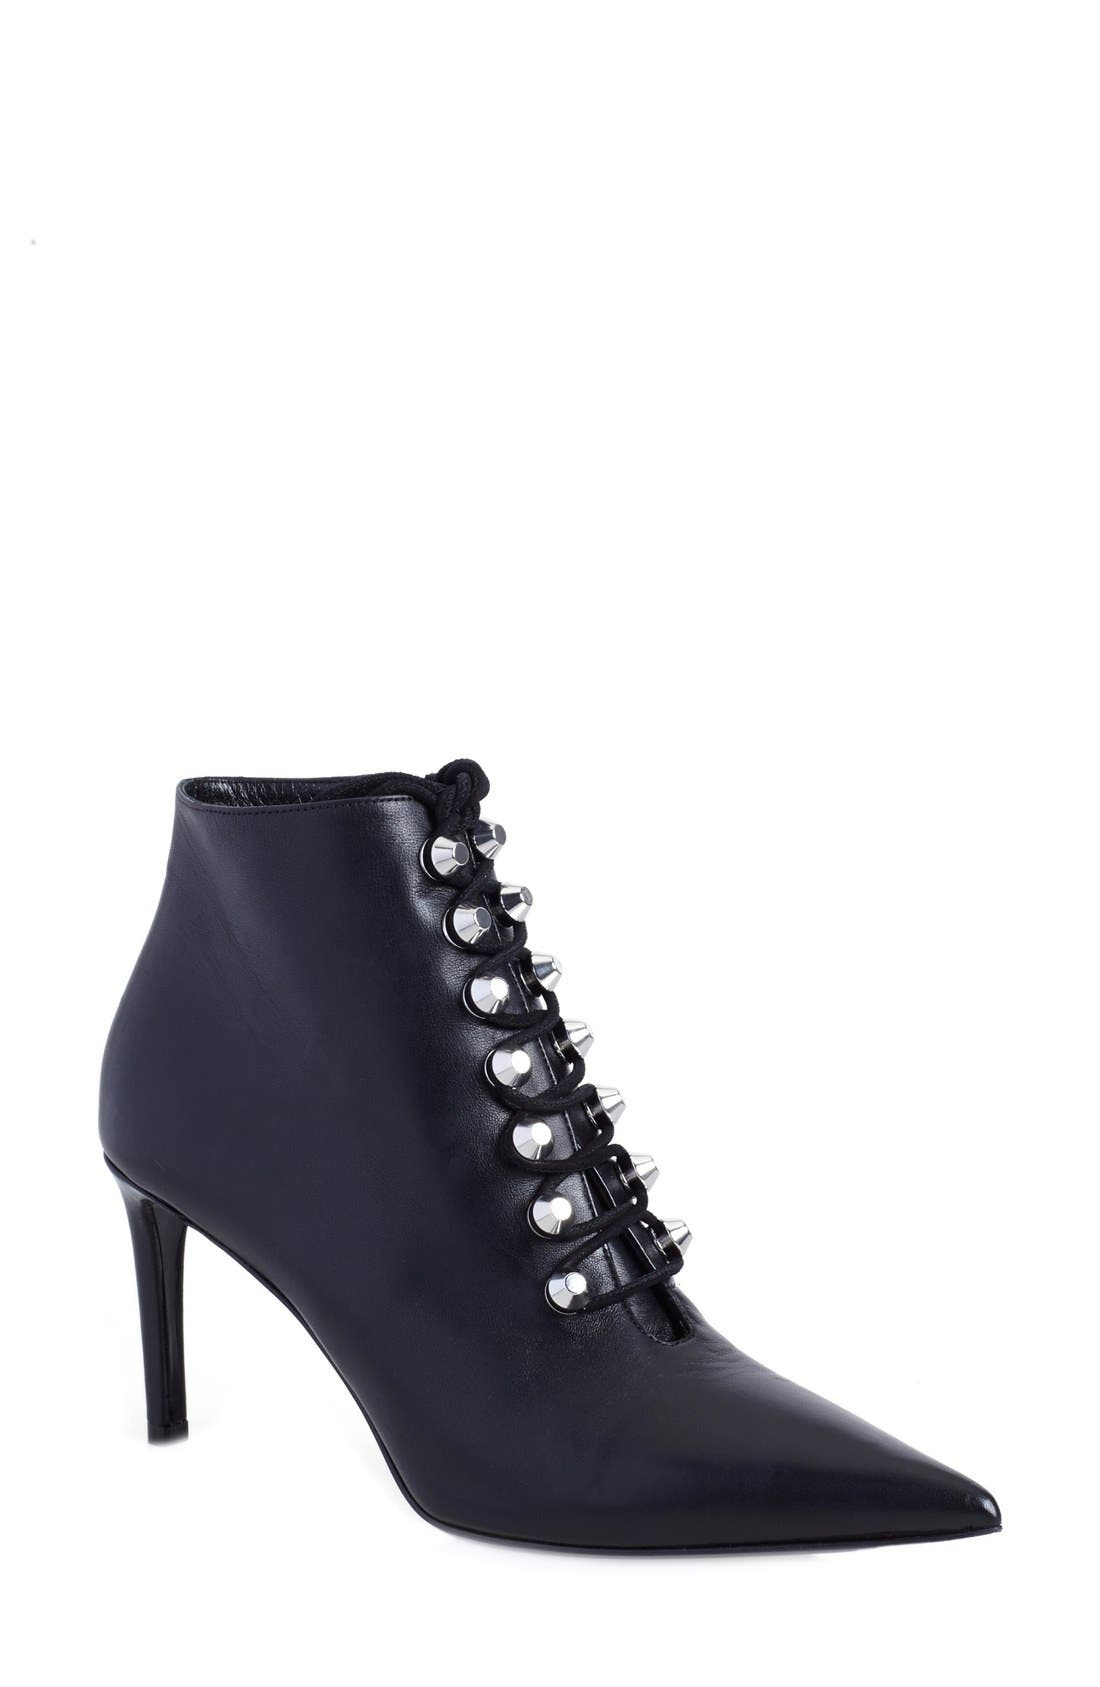 Alternate Image 1 Selected - Balenciaga Lace-Up Bootie (Women)